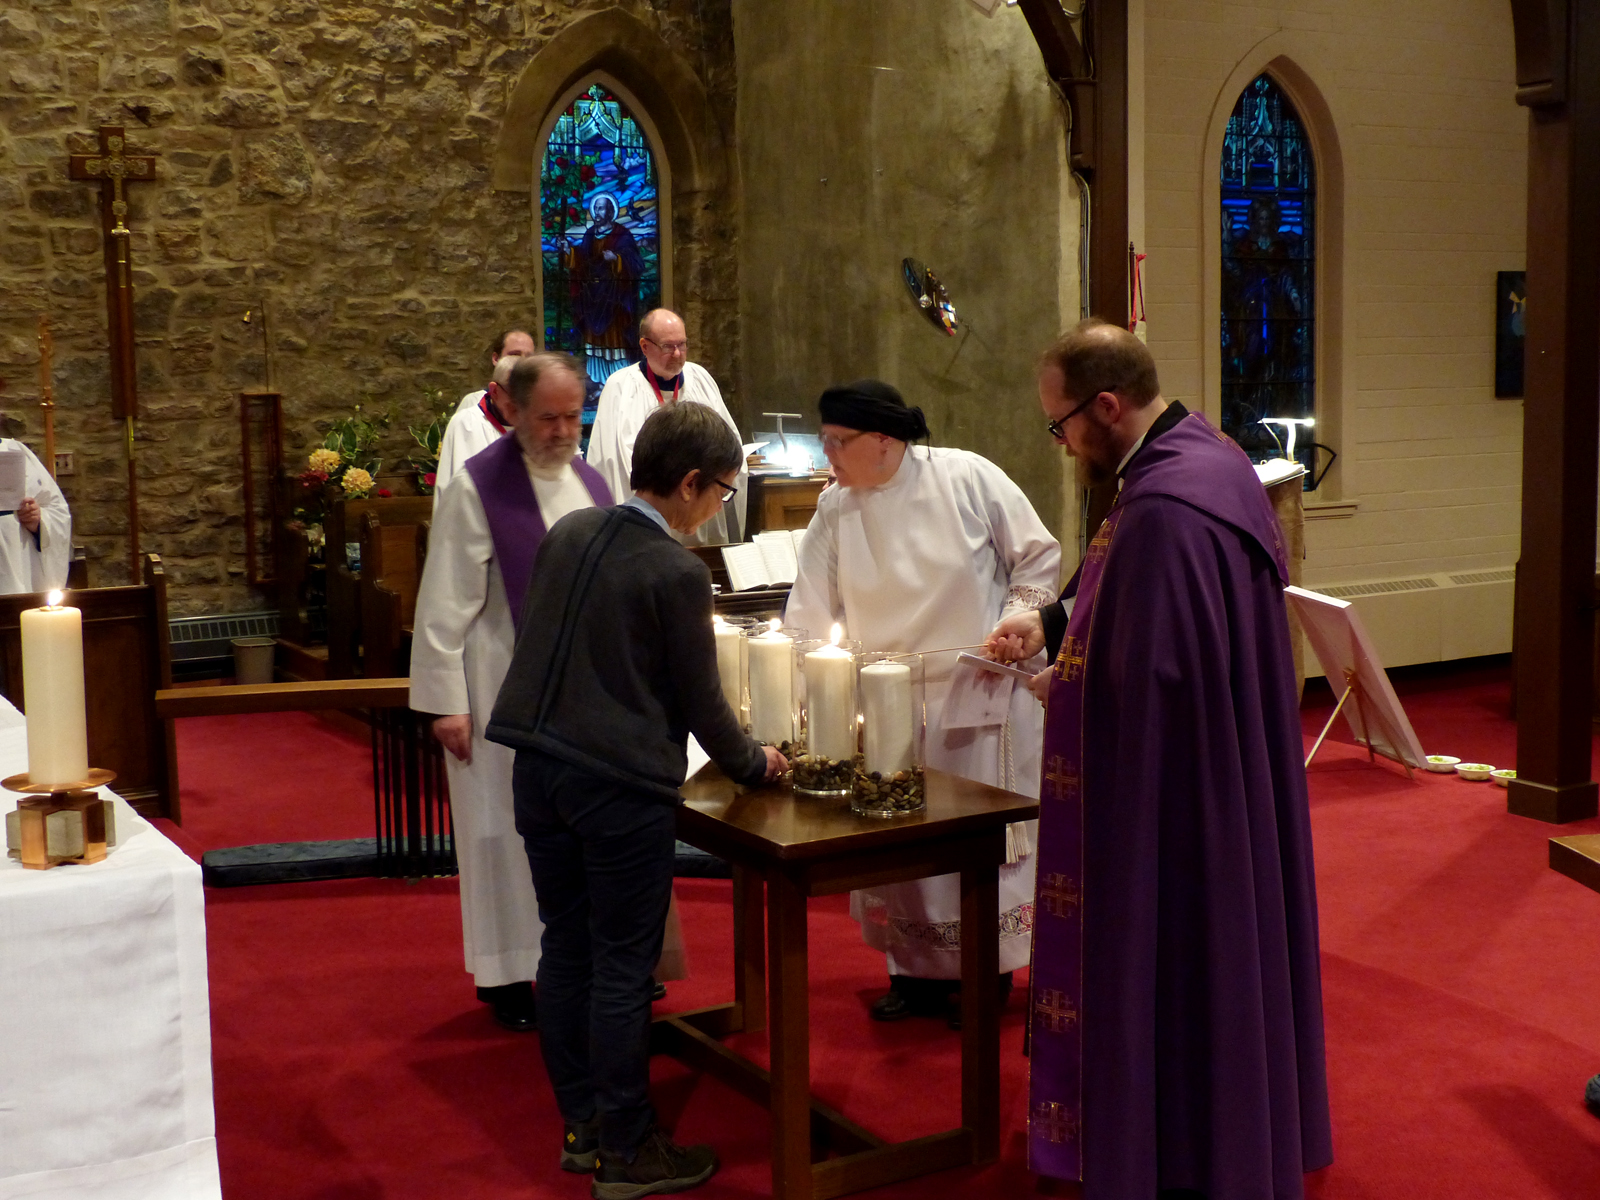 Representatives of faith communities in Hamilton light candles as part of an ecumenical service during Lent 2017.